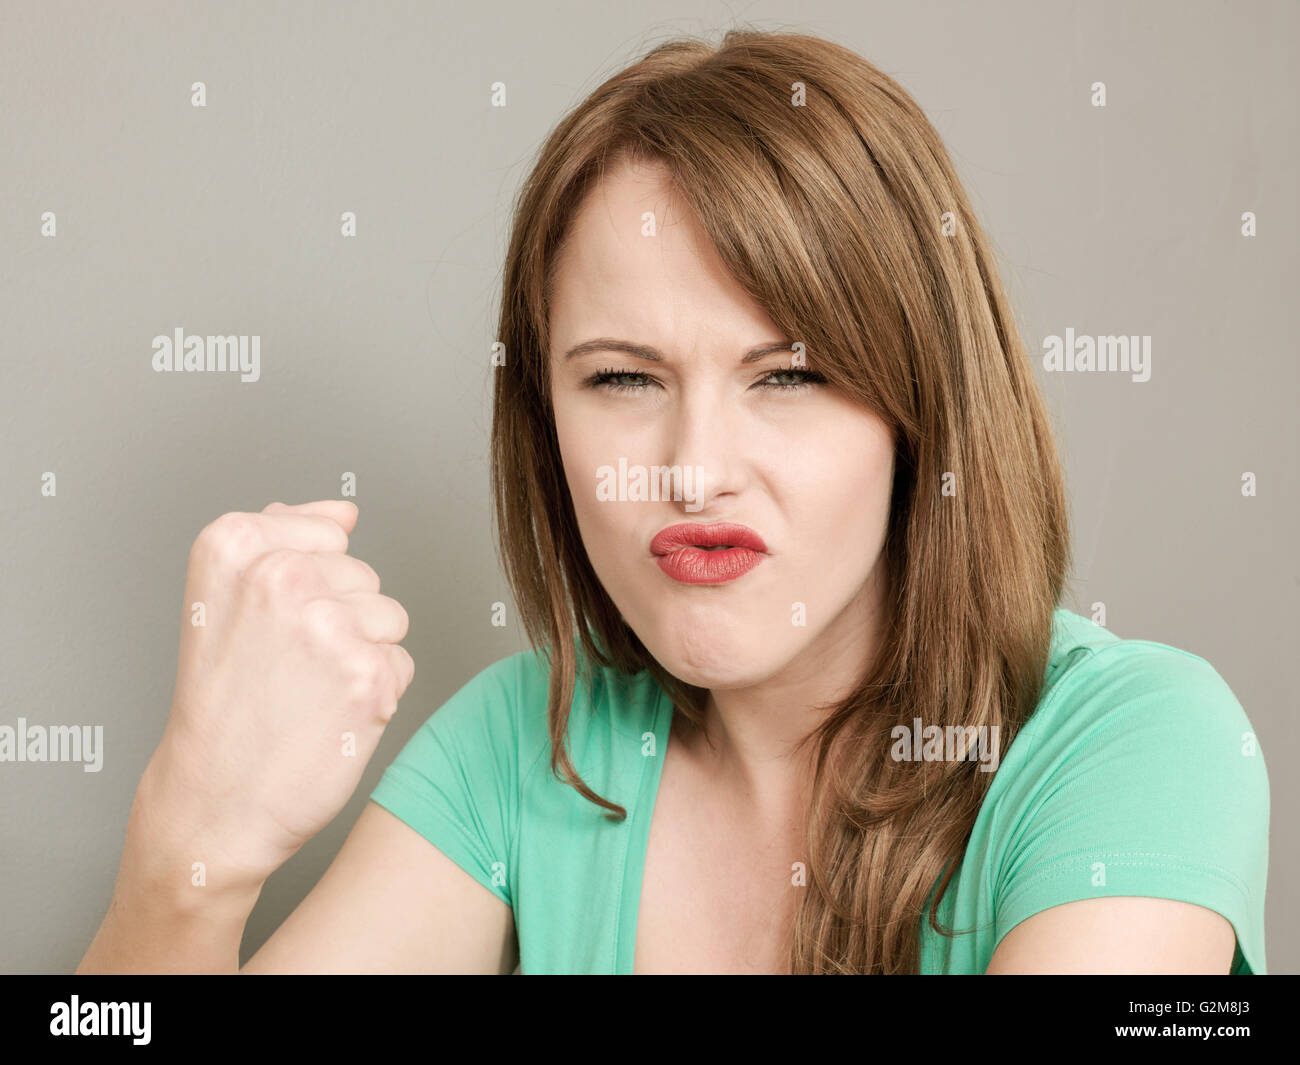 Portrait of an Angry Bad Tempered Young Caucasian Woman Frowning and Shaking Her Fist At The Camera - Stock Image